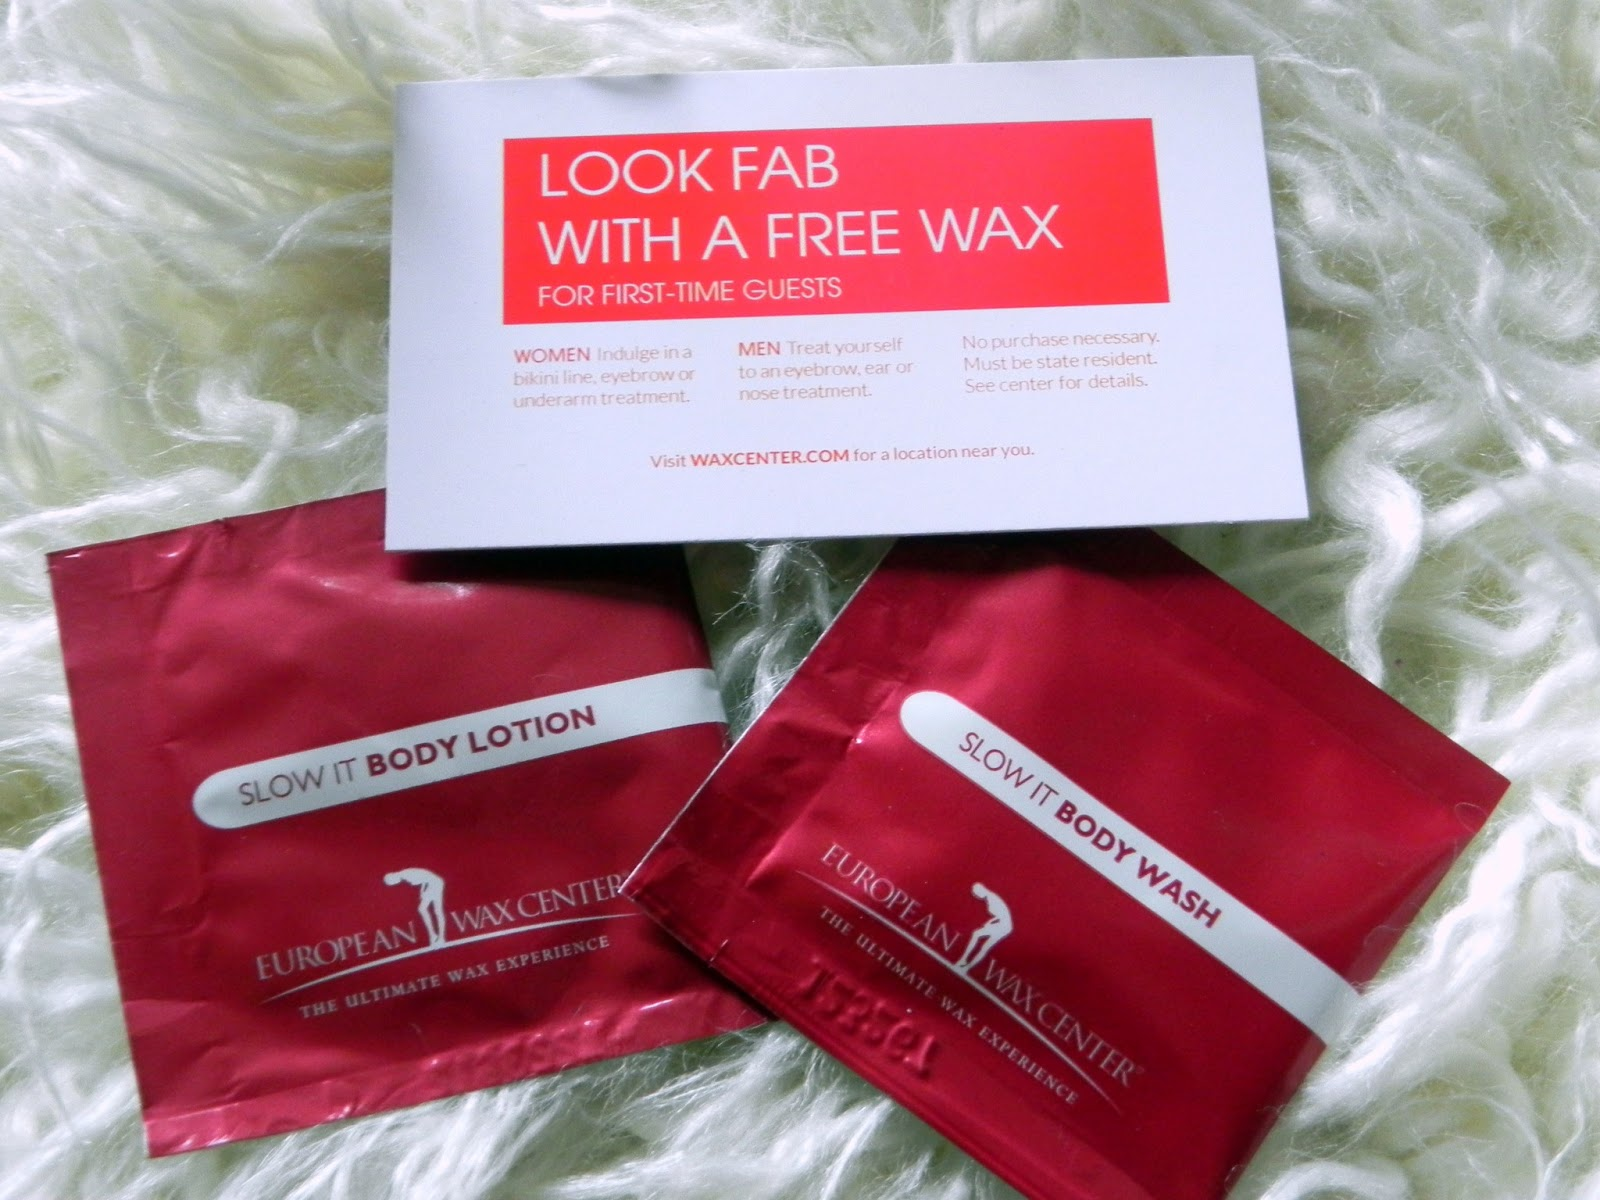 European wax center coupons